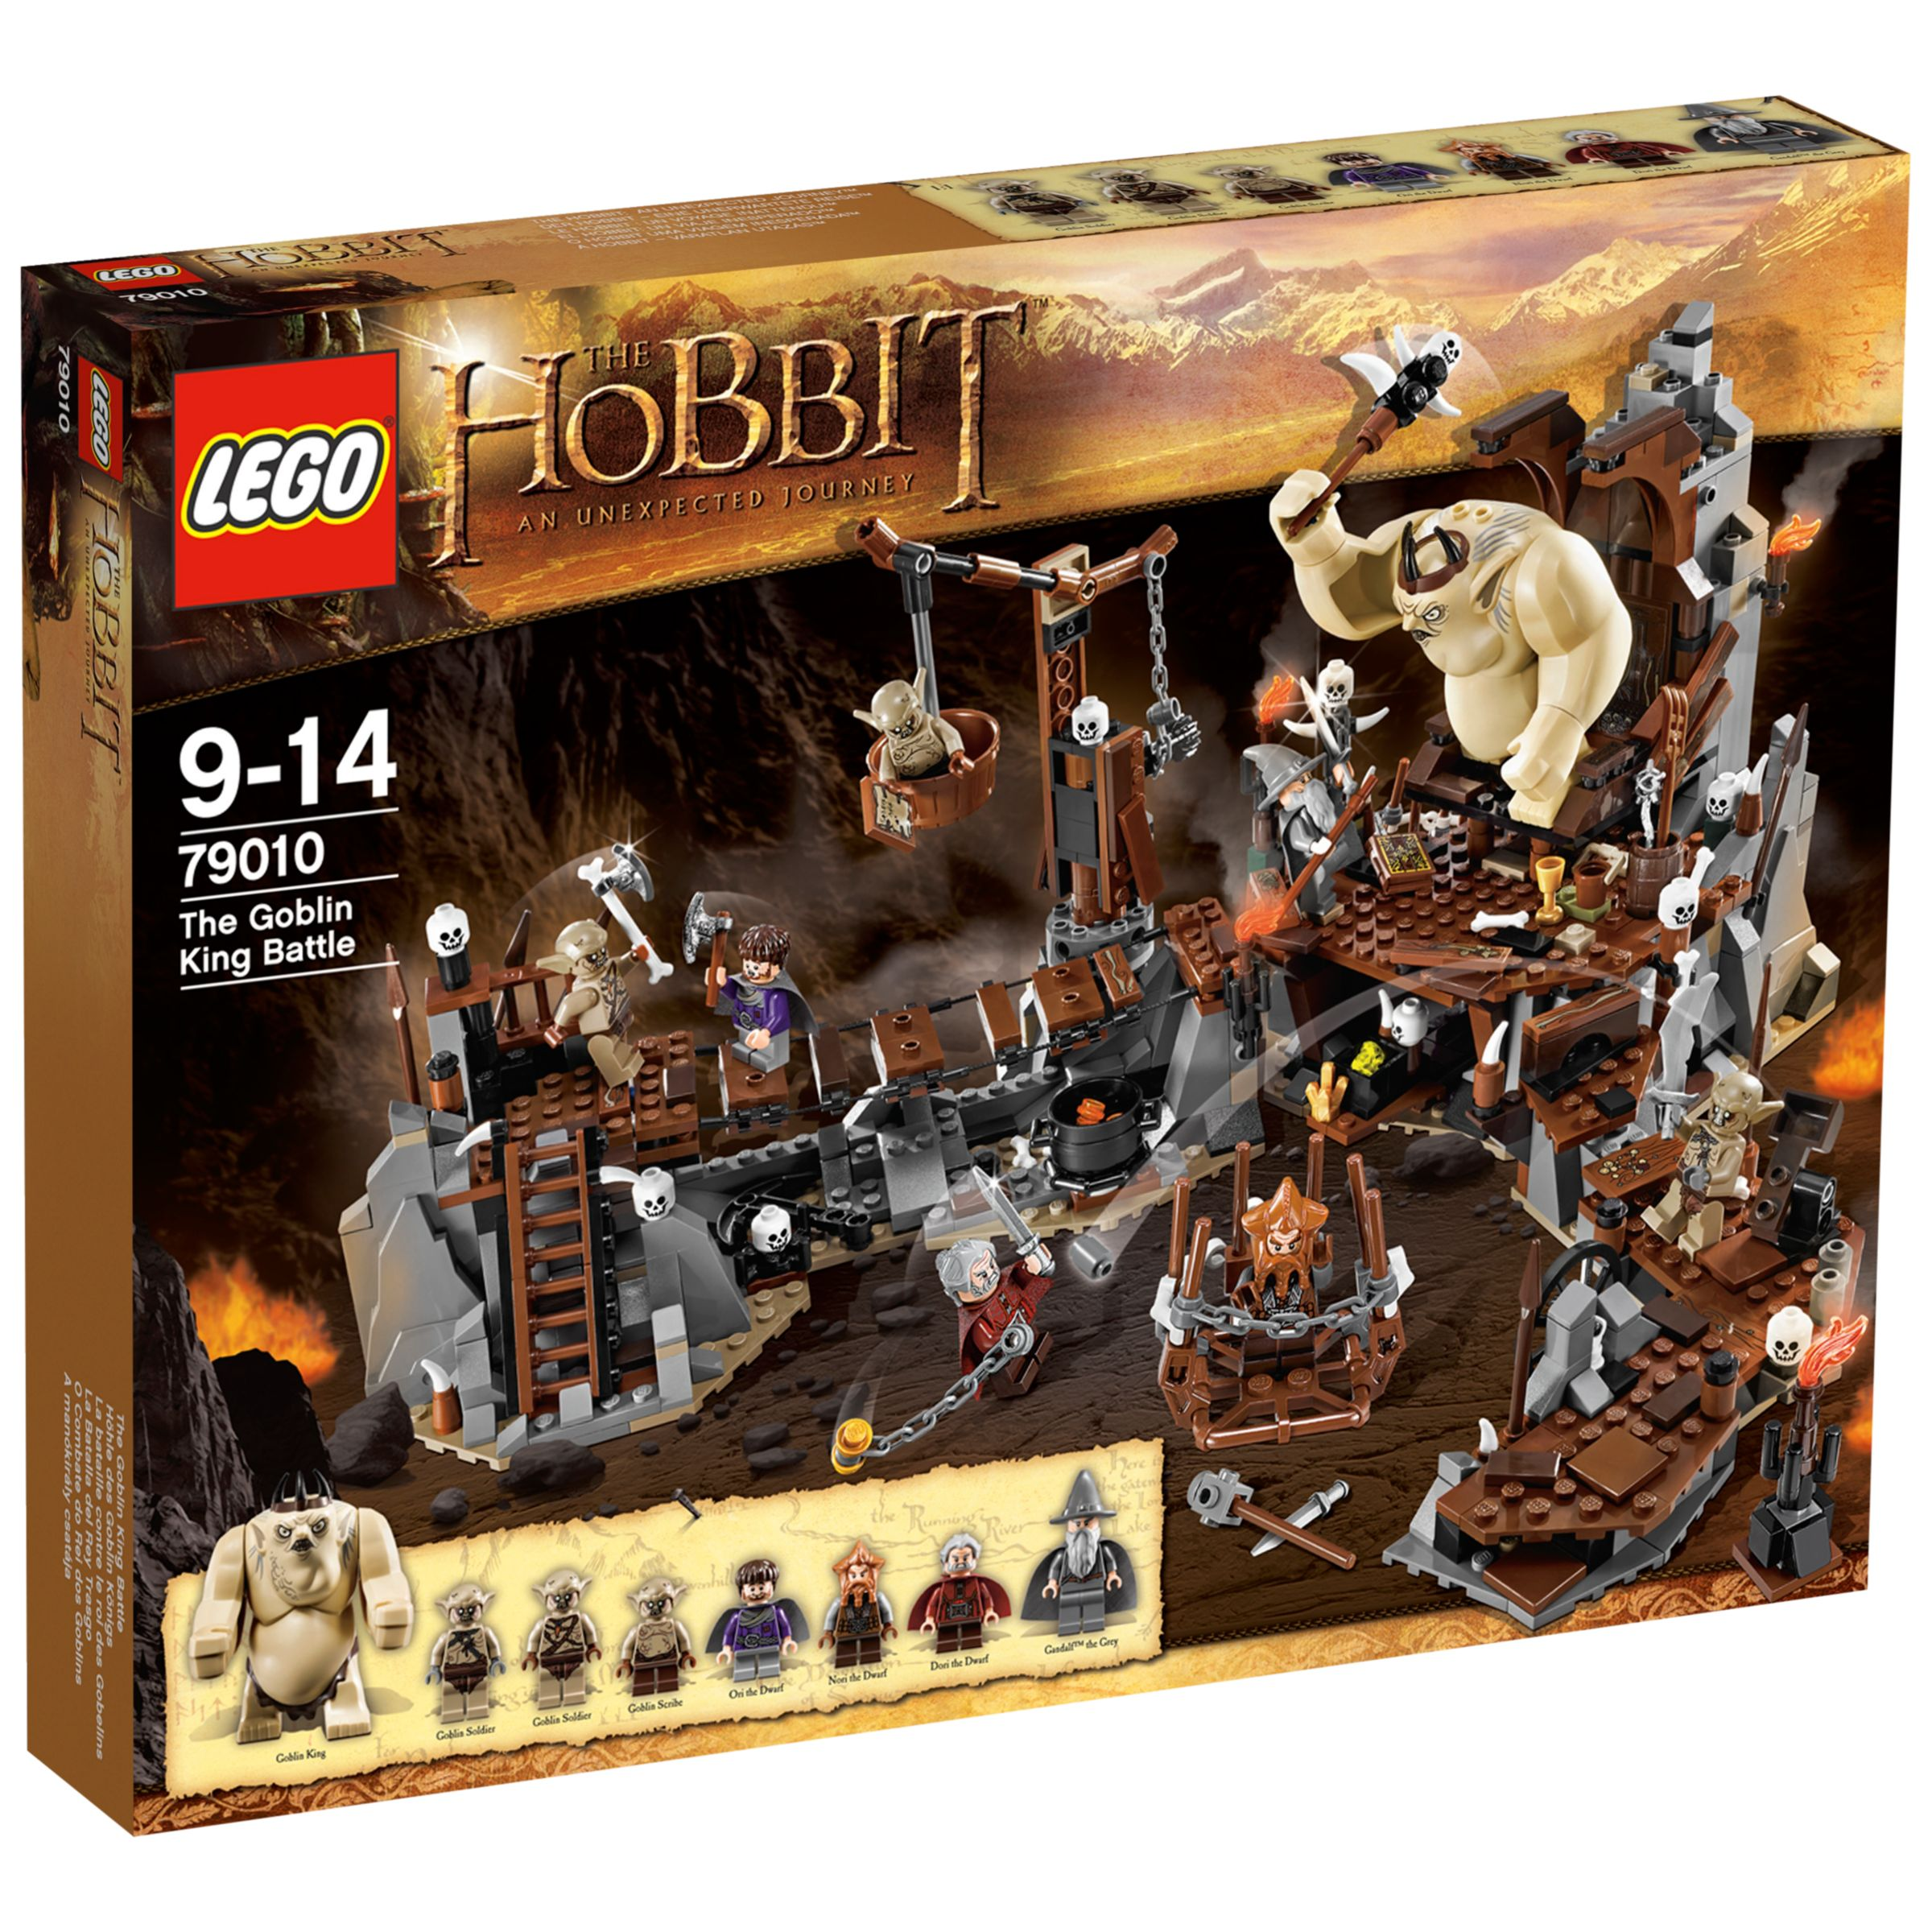 Lego The Hobbit, The Goblin King Battle Set